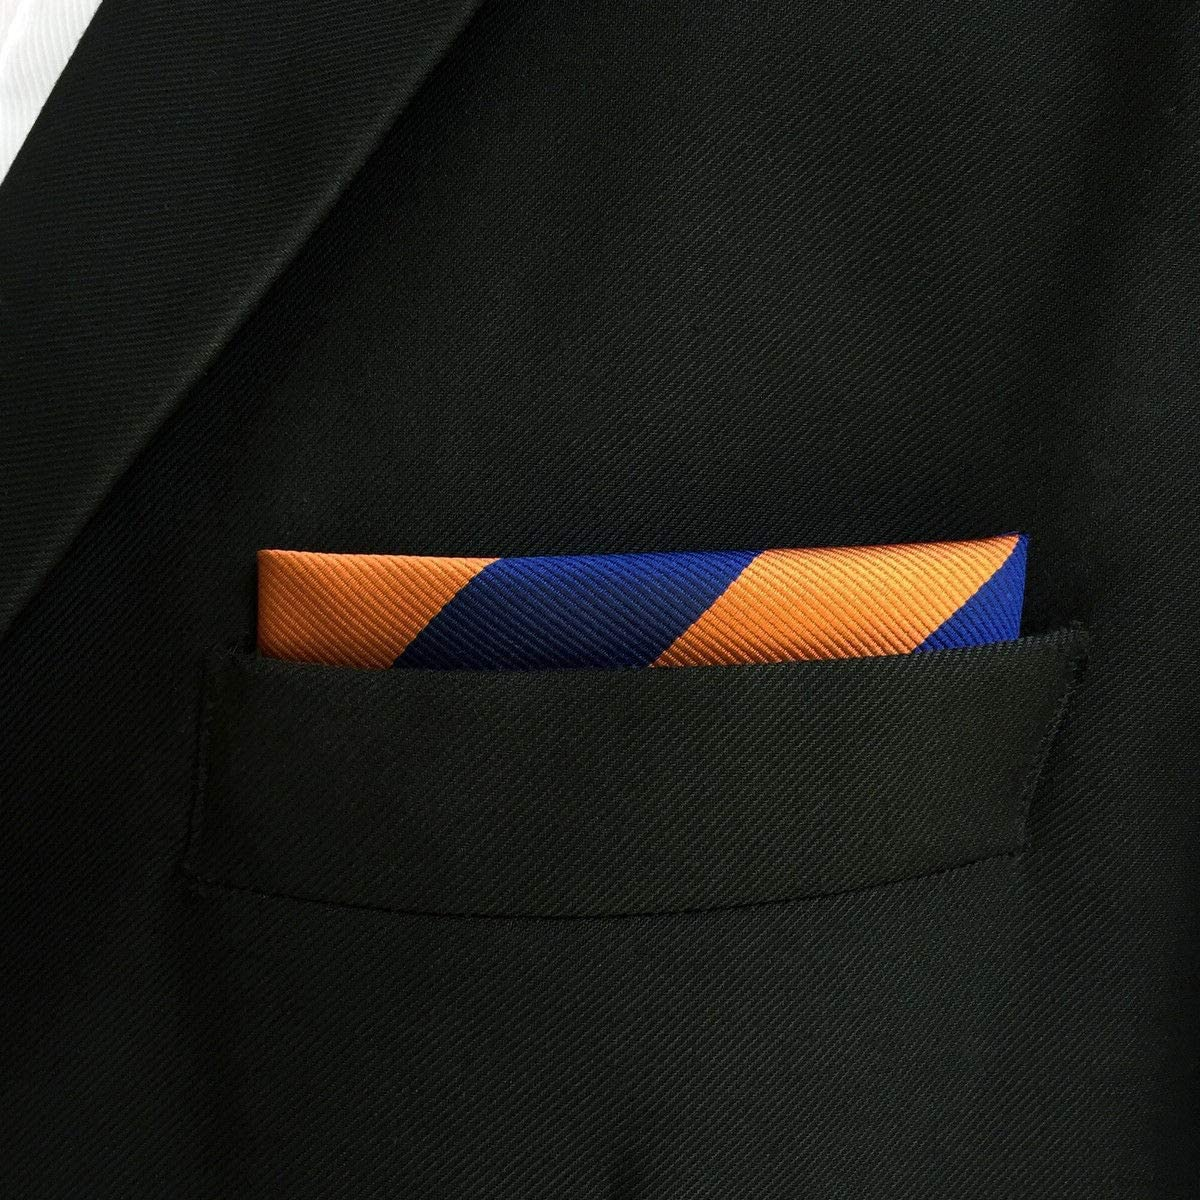 SHLAX/&WING Stripes Mens Pocket Square Orange Blue New for Wedding Party Large